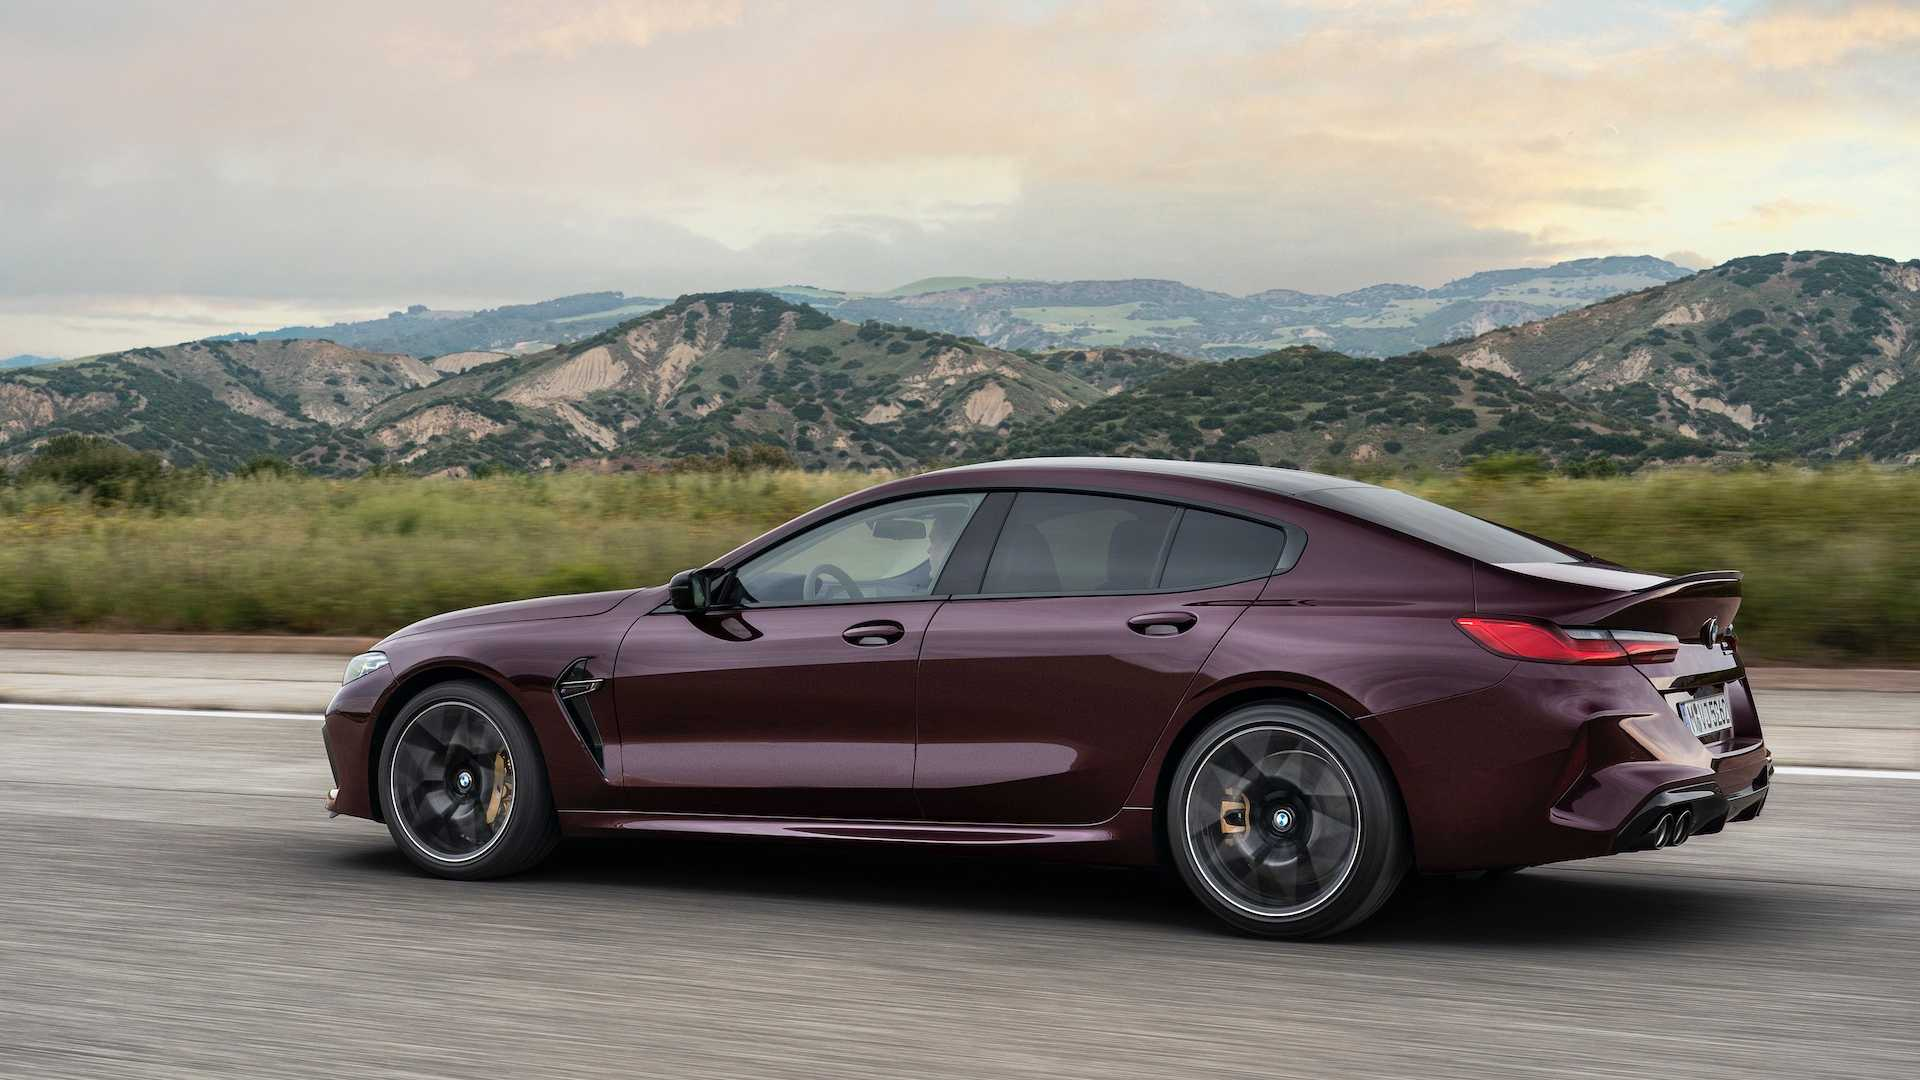 2020-bmw-m8-gran-coupe-competition-6